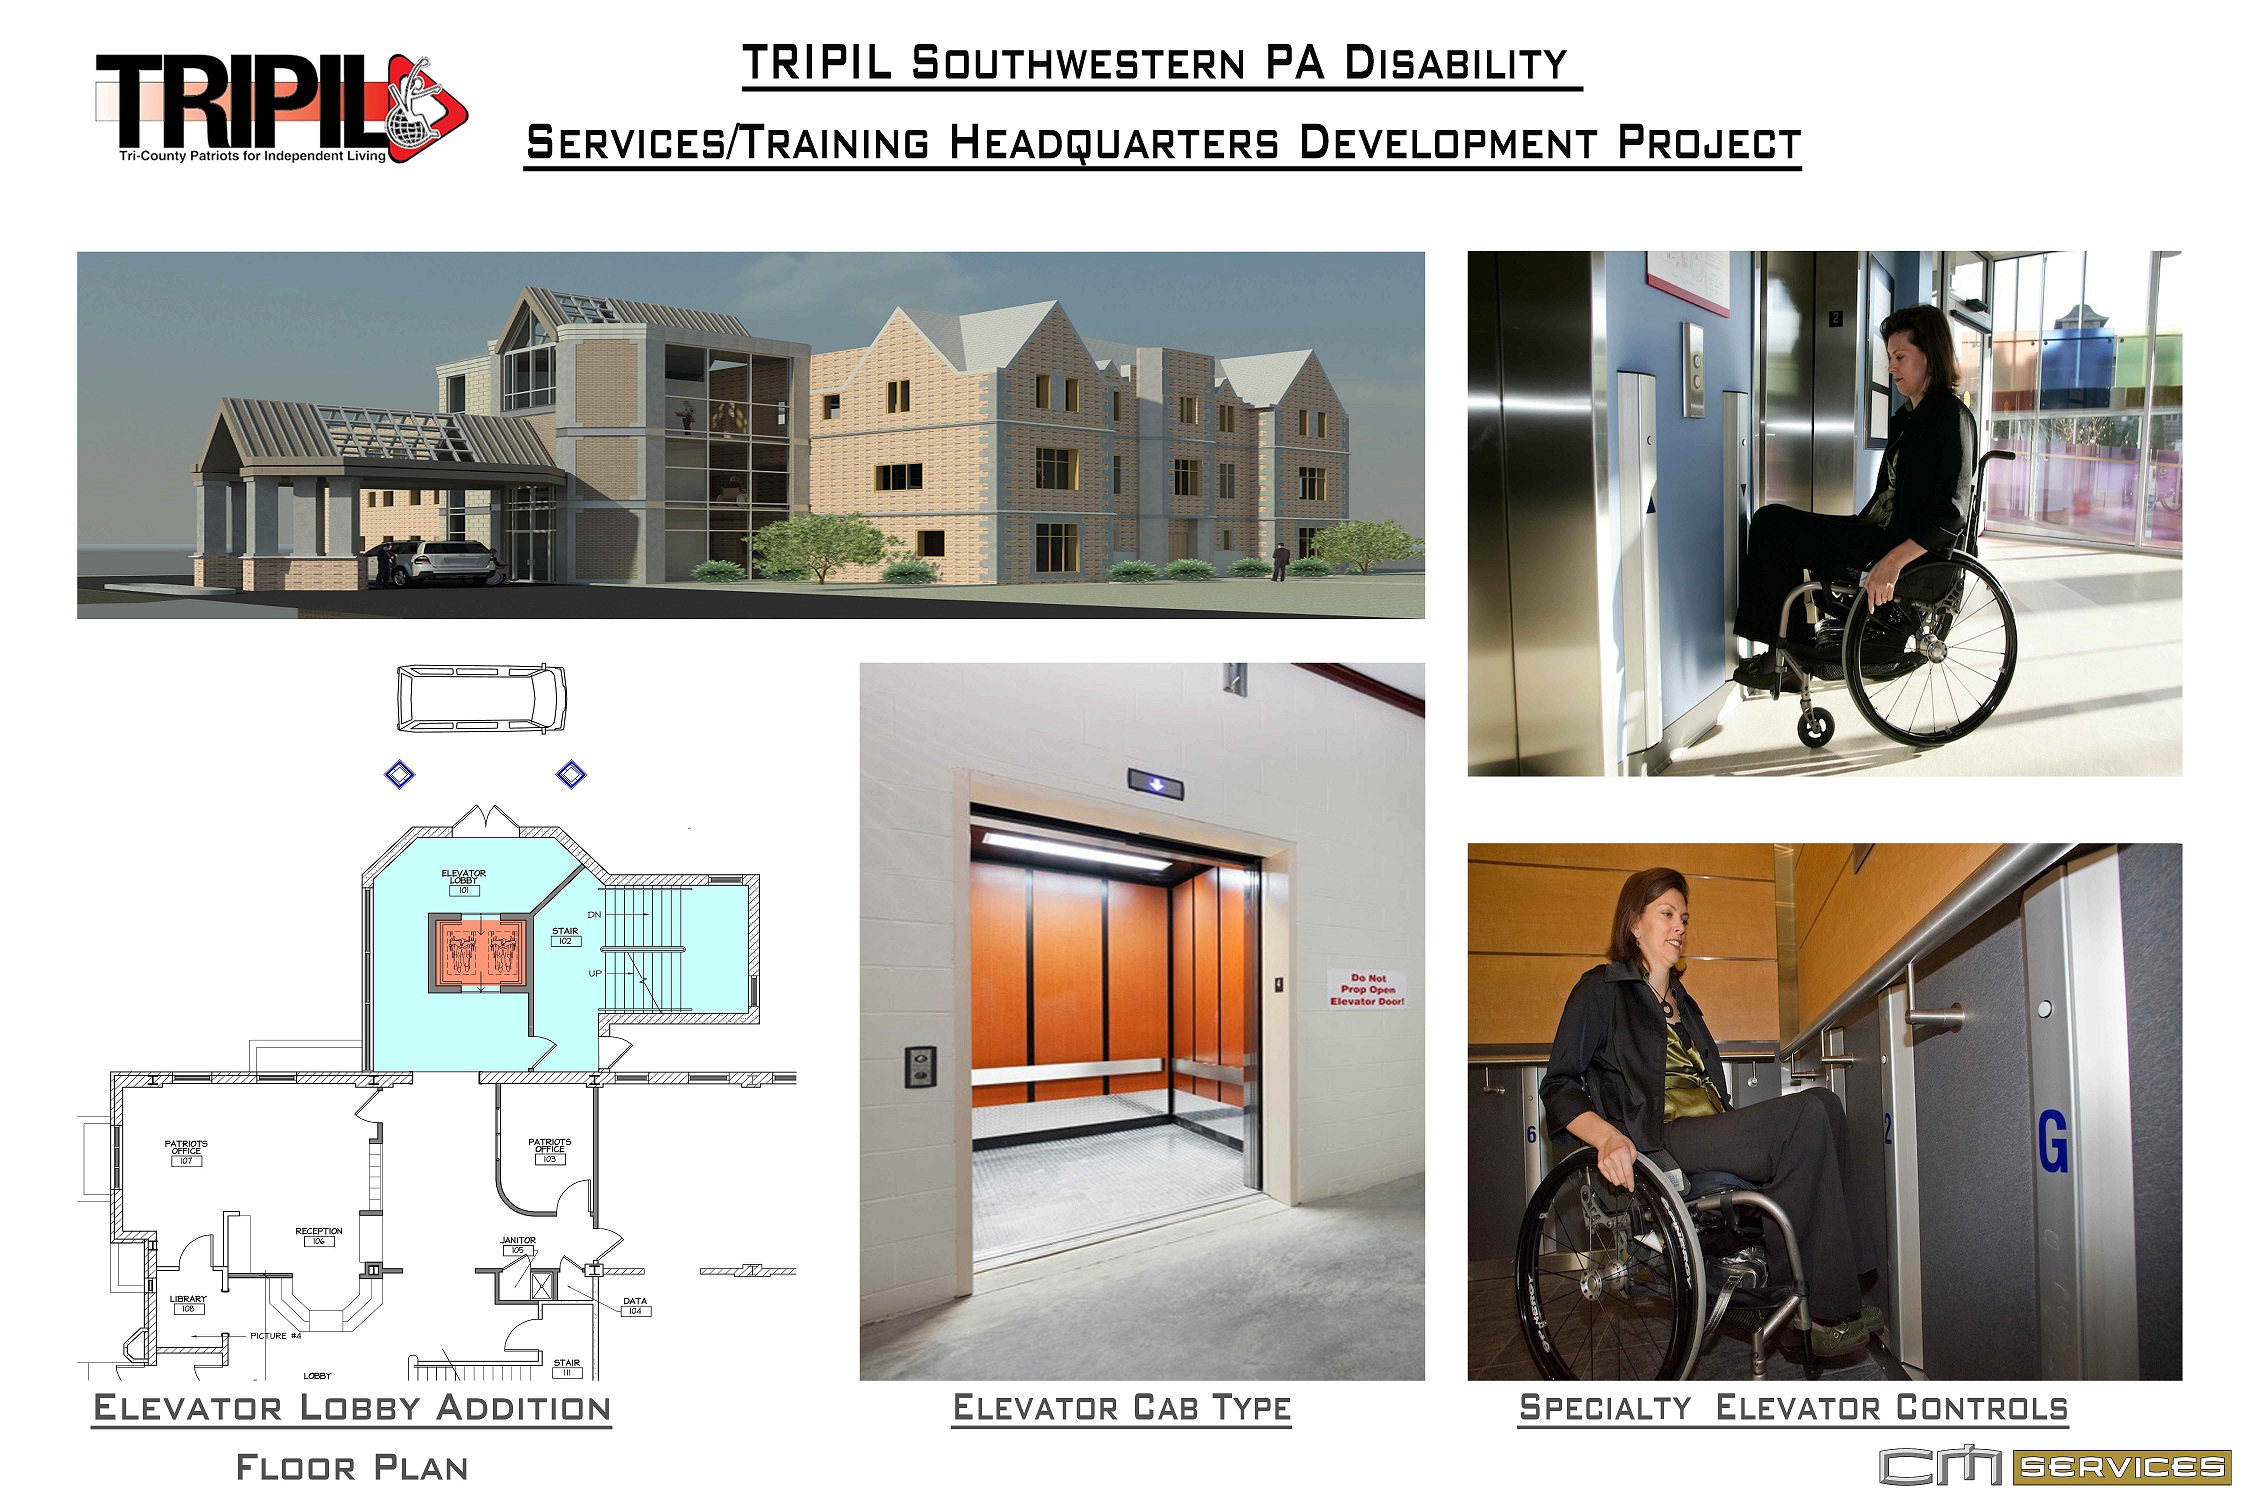 Architectural drawing and pictures of accessible elevator for new TRIPIL headquarters.